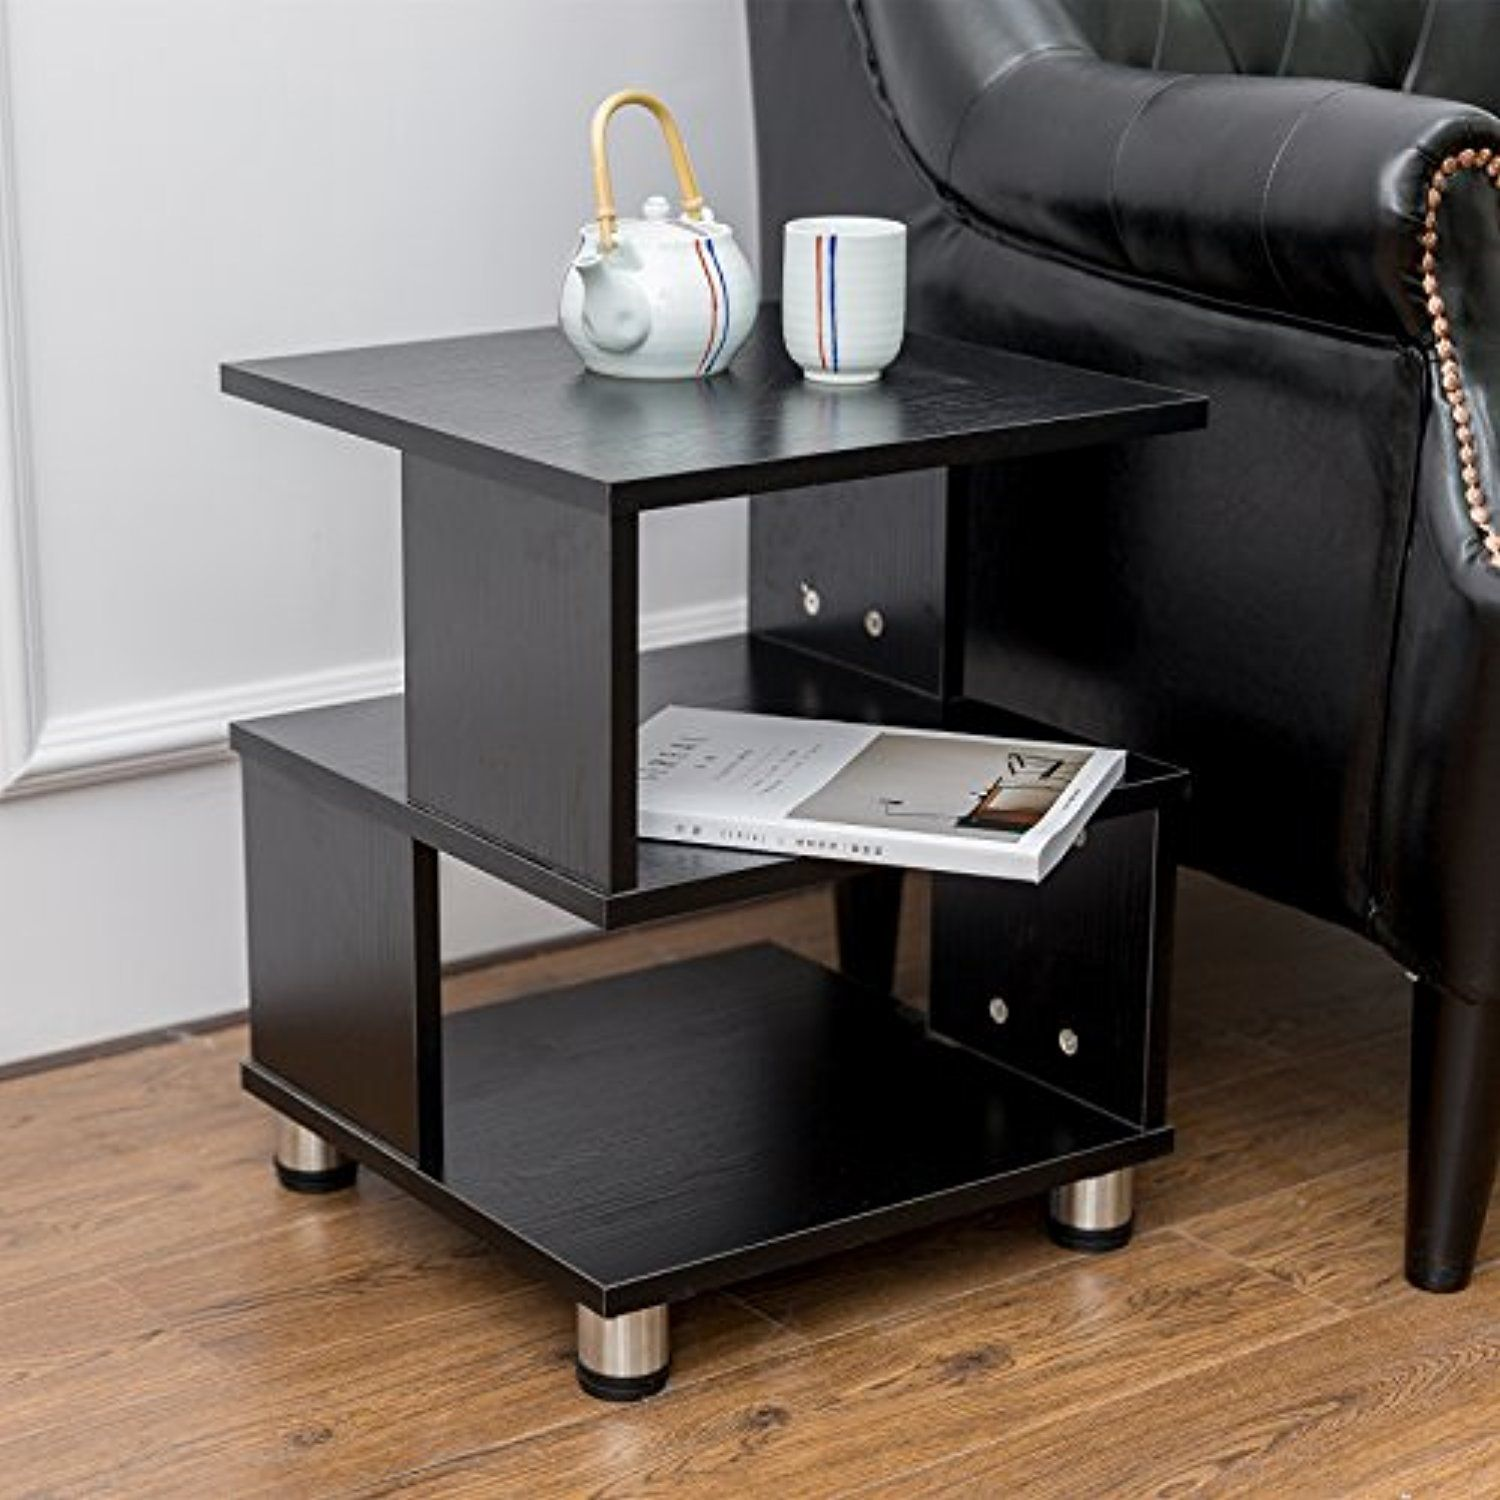 Alva House Black Finish Chair Side Table End Table Coffee Table With 3 Tier Shelf Black You Can Find More Details With Images Chair Side Table Furniture Coffee Table